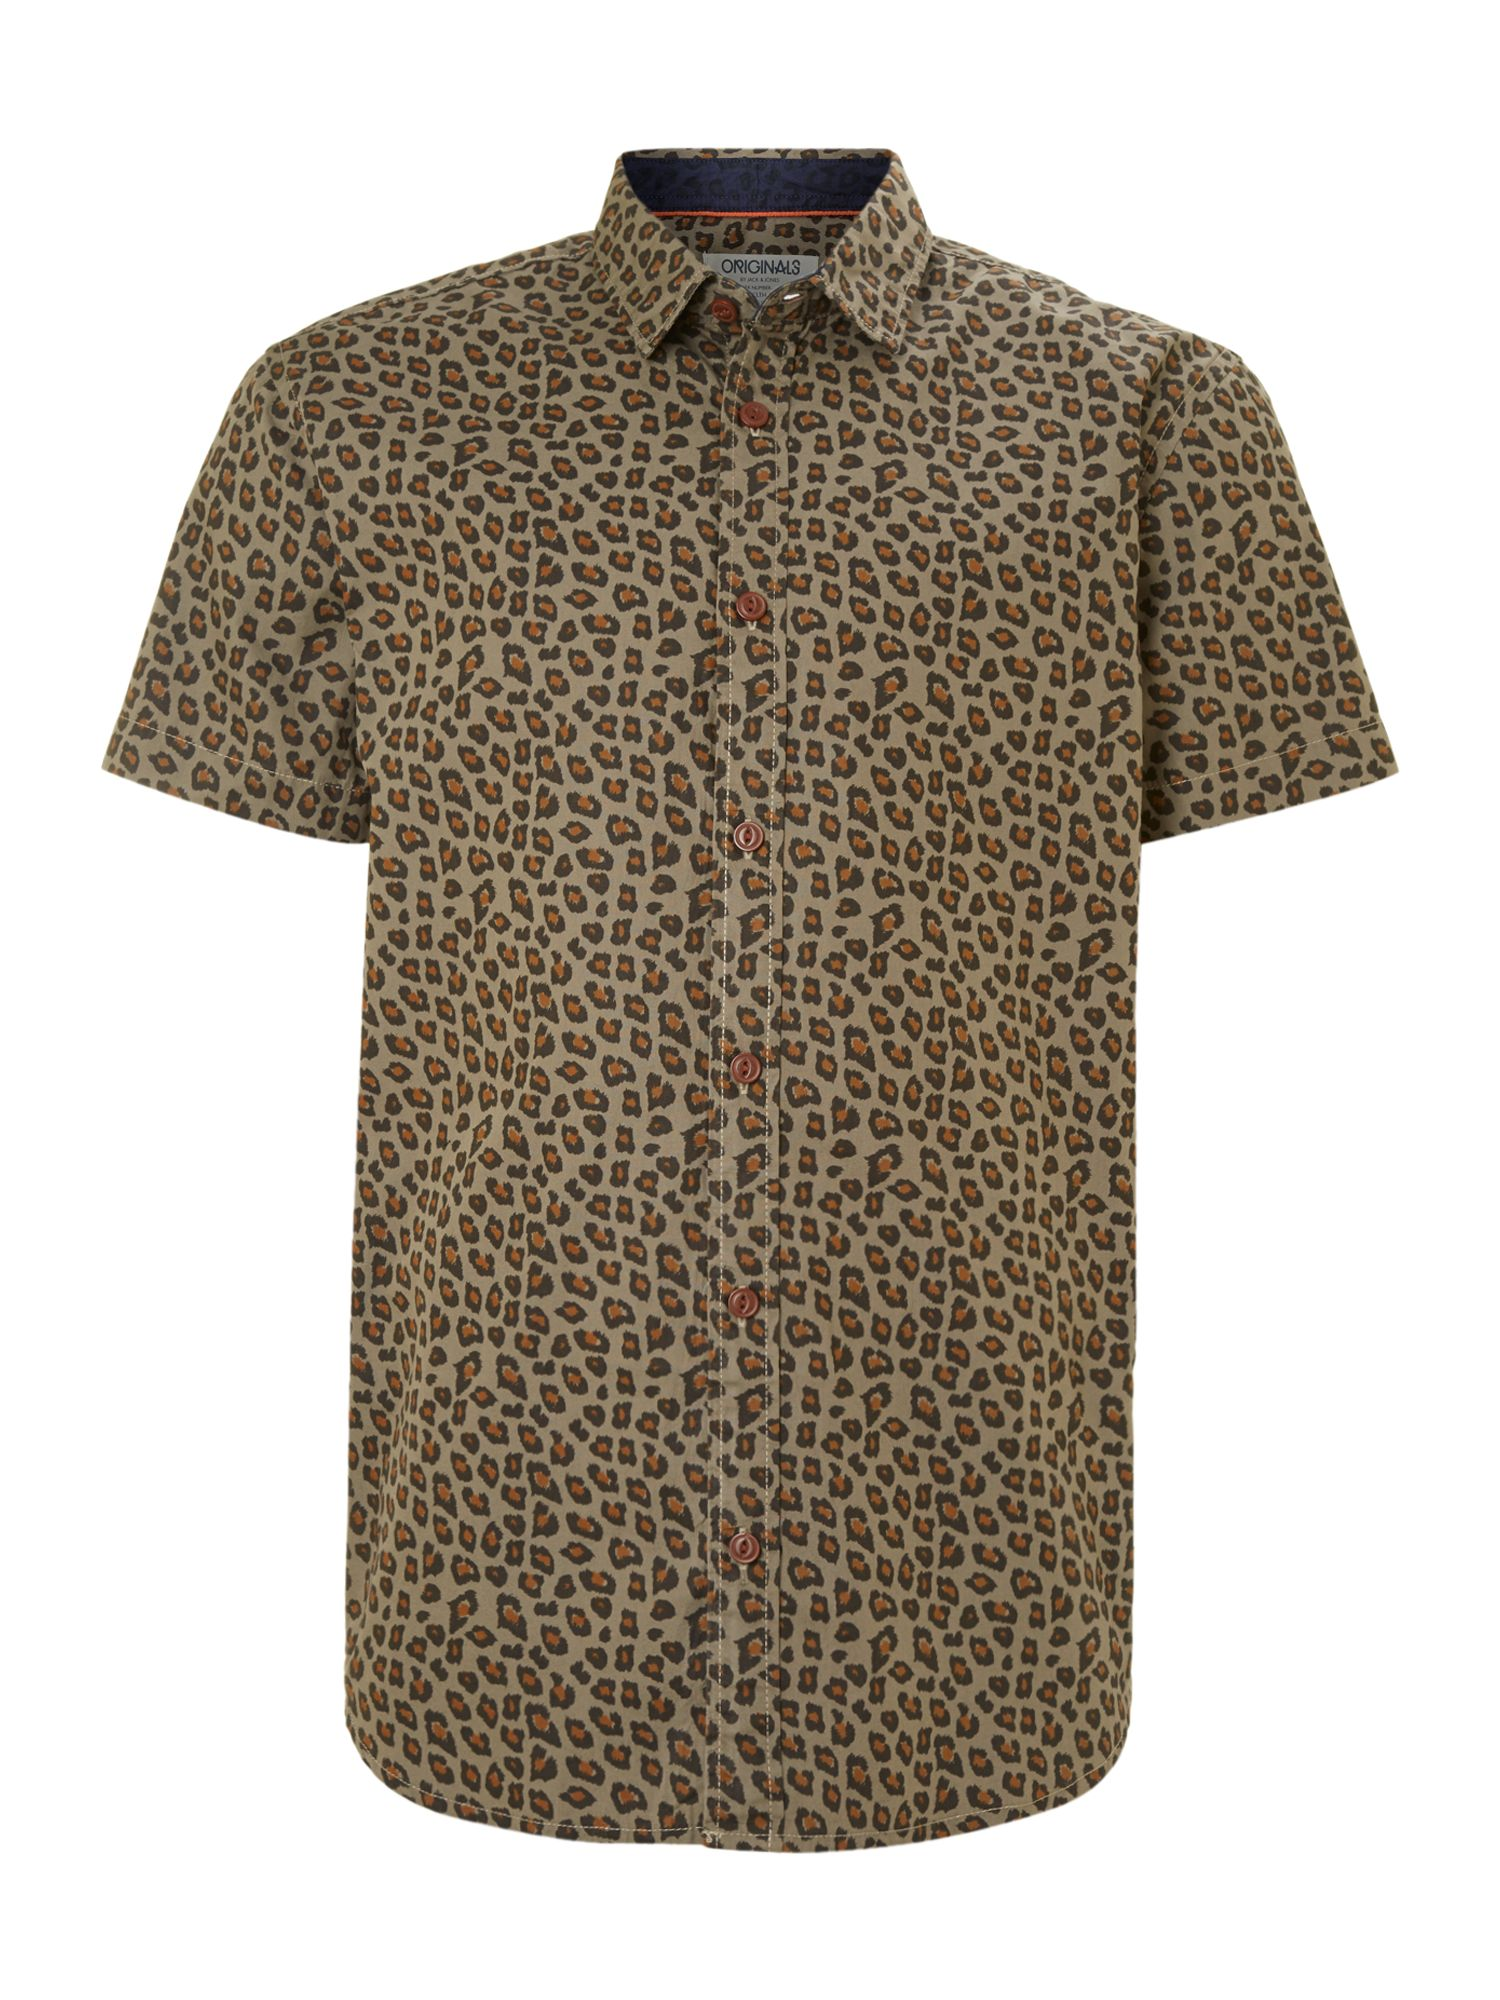 Short-sleeved animal print shirt